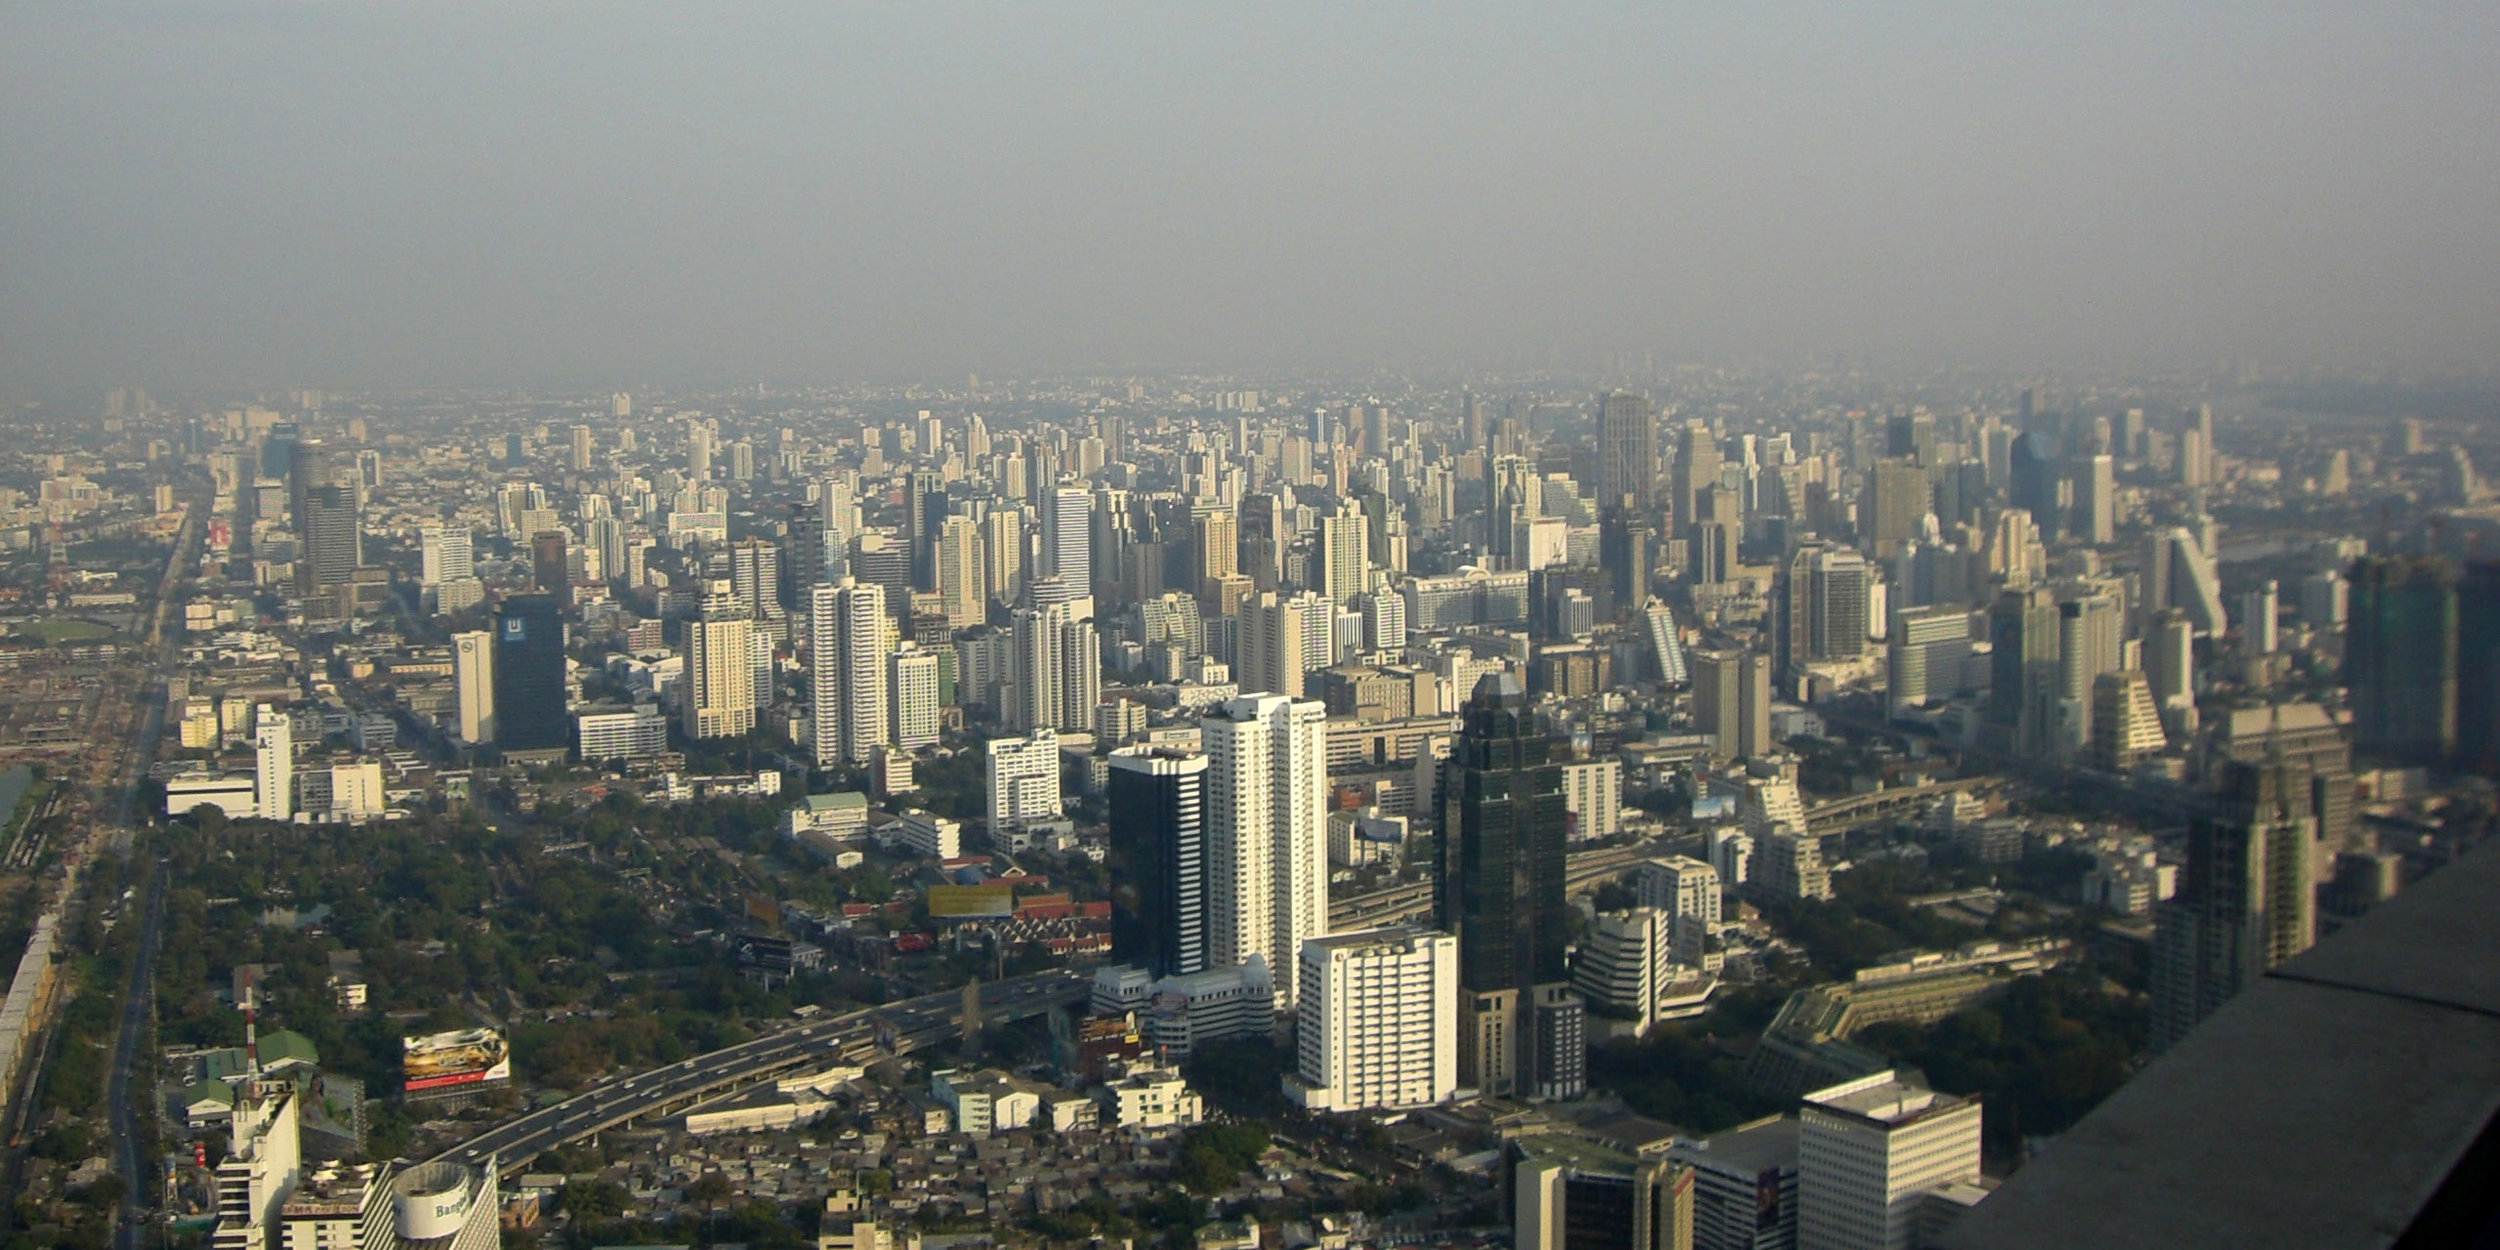 Health experts encourage Bangkok's citizens to stay indoors due to severe smog. (GoodFreePhotos)